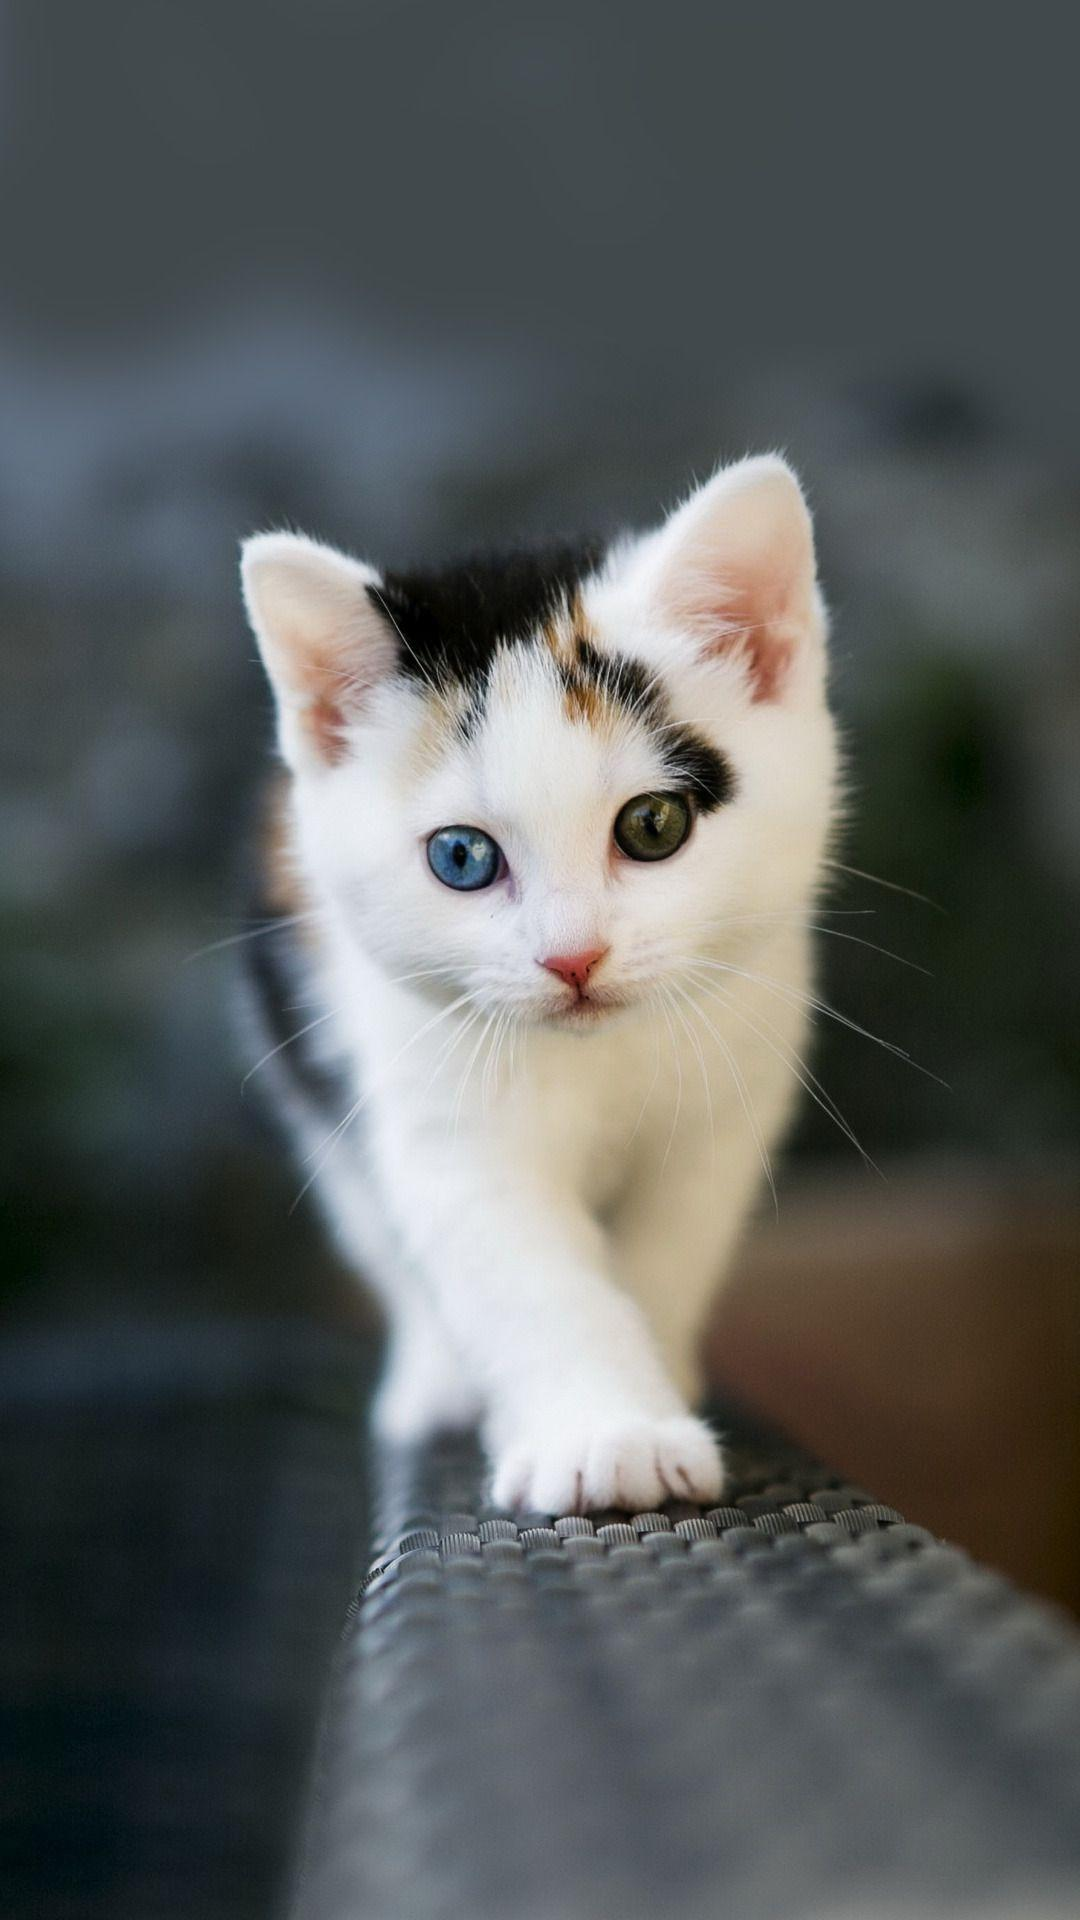 Cute Kittens Wallpapers For Mobile Wallpaper Cave